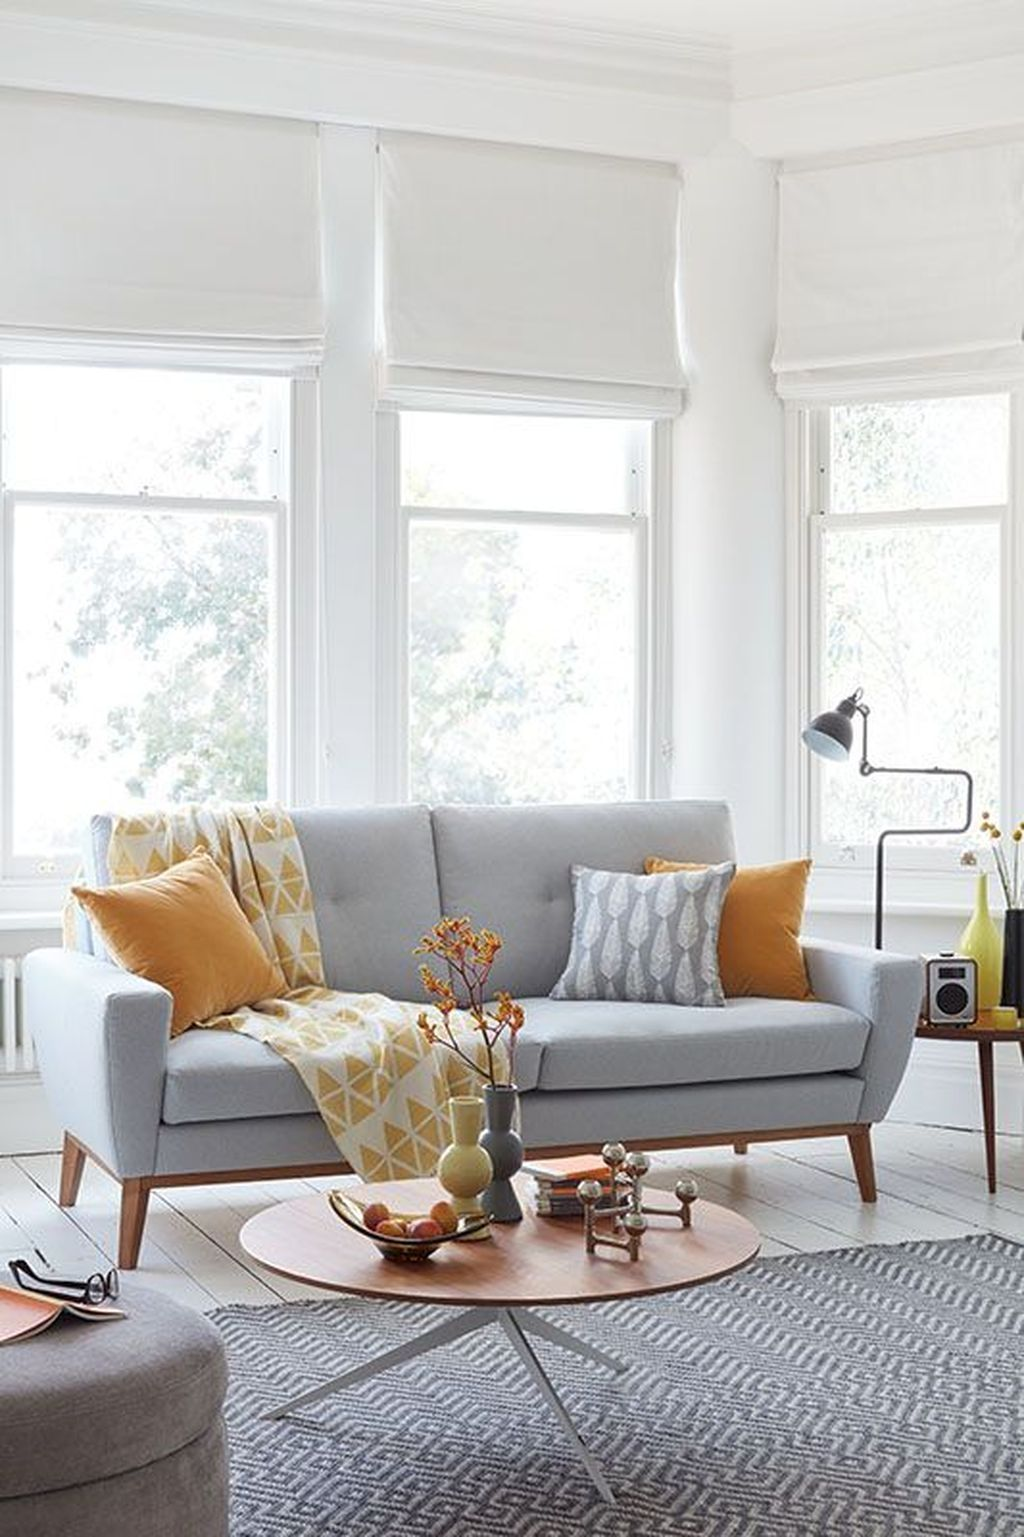 48 Comfy Living Room Designs For Small Spaces Ideas Living Room Design Small Spaces Comfy Living Room Small Living Rooms